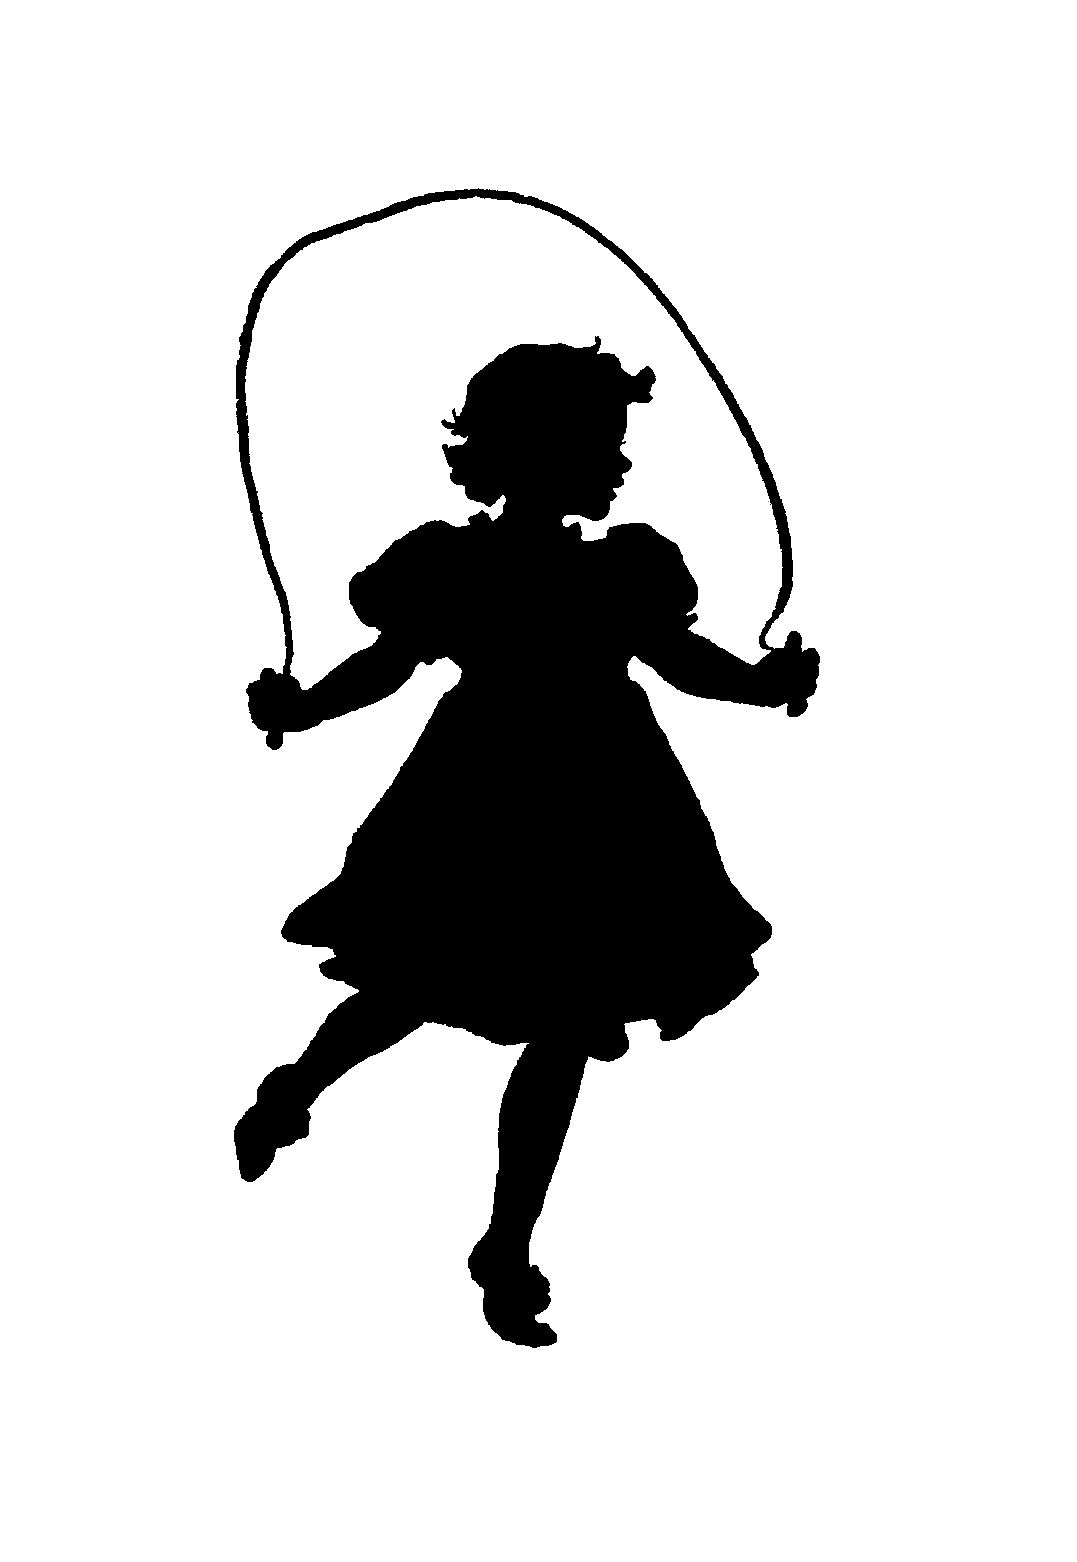 Clipart girl child silhouette transparent - ClipartFest | Kids silhouette,  Silhouette, Silhouette clip art